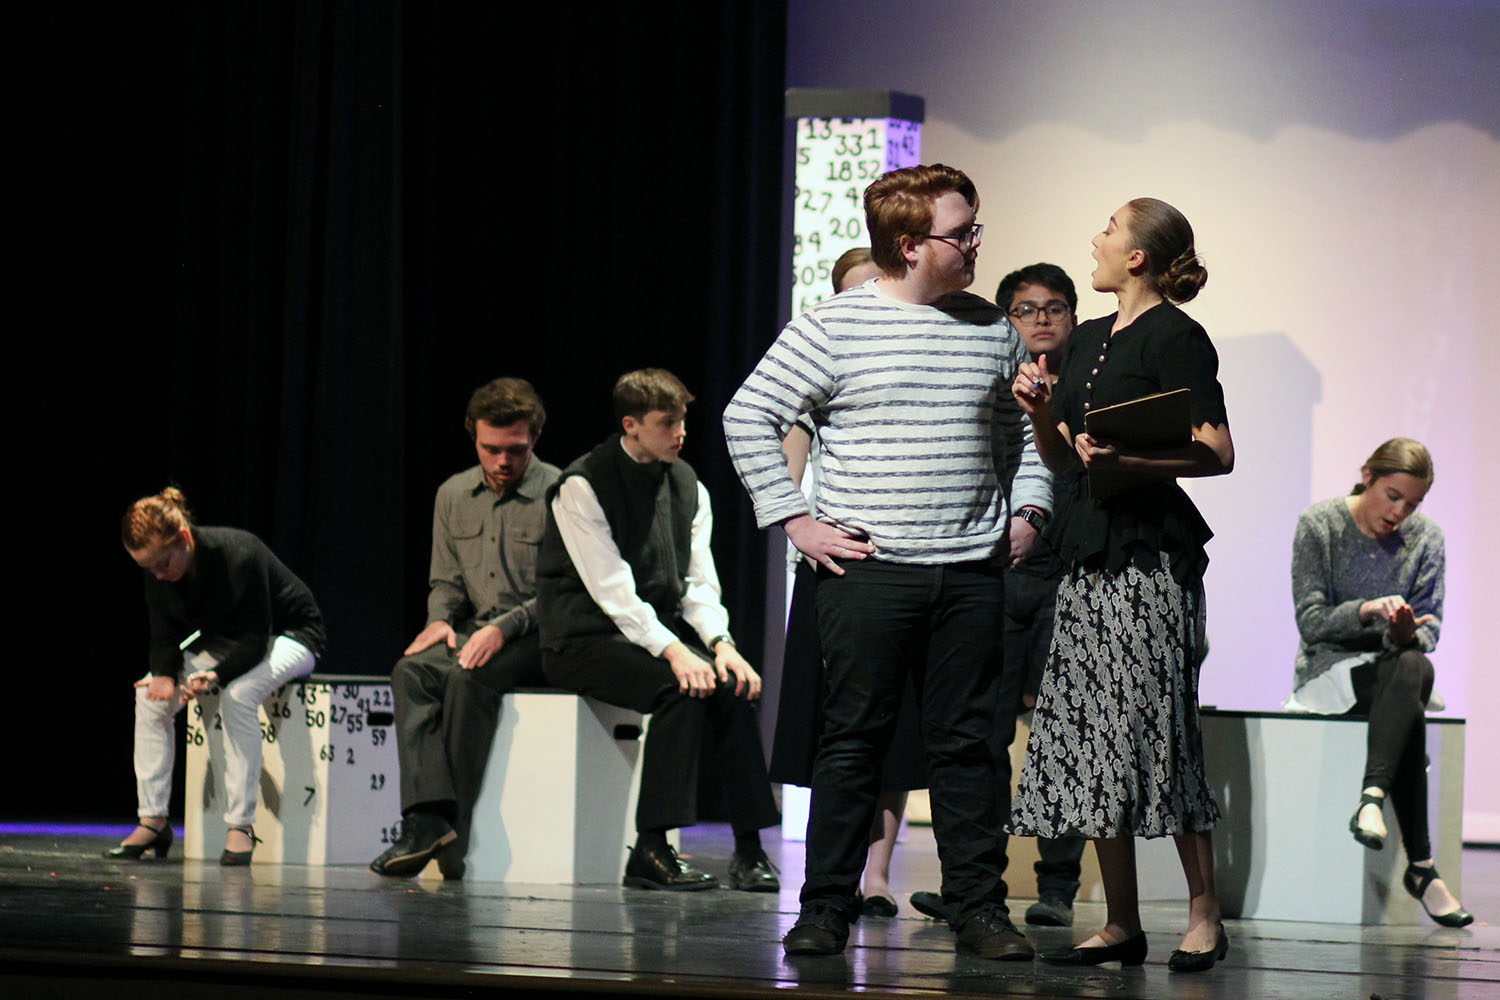 Seniors Seth Nease and Natalie Davis as characters Ed Boone and Mrs. Gascoyne discuss his son Christopher, played by senior Nolan Quintanilla, taking an A level math examination.